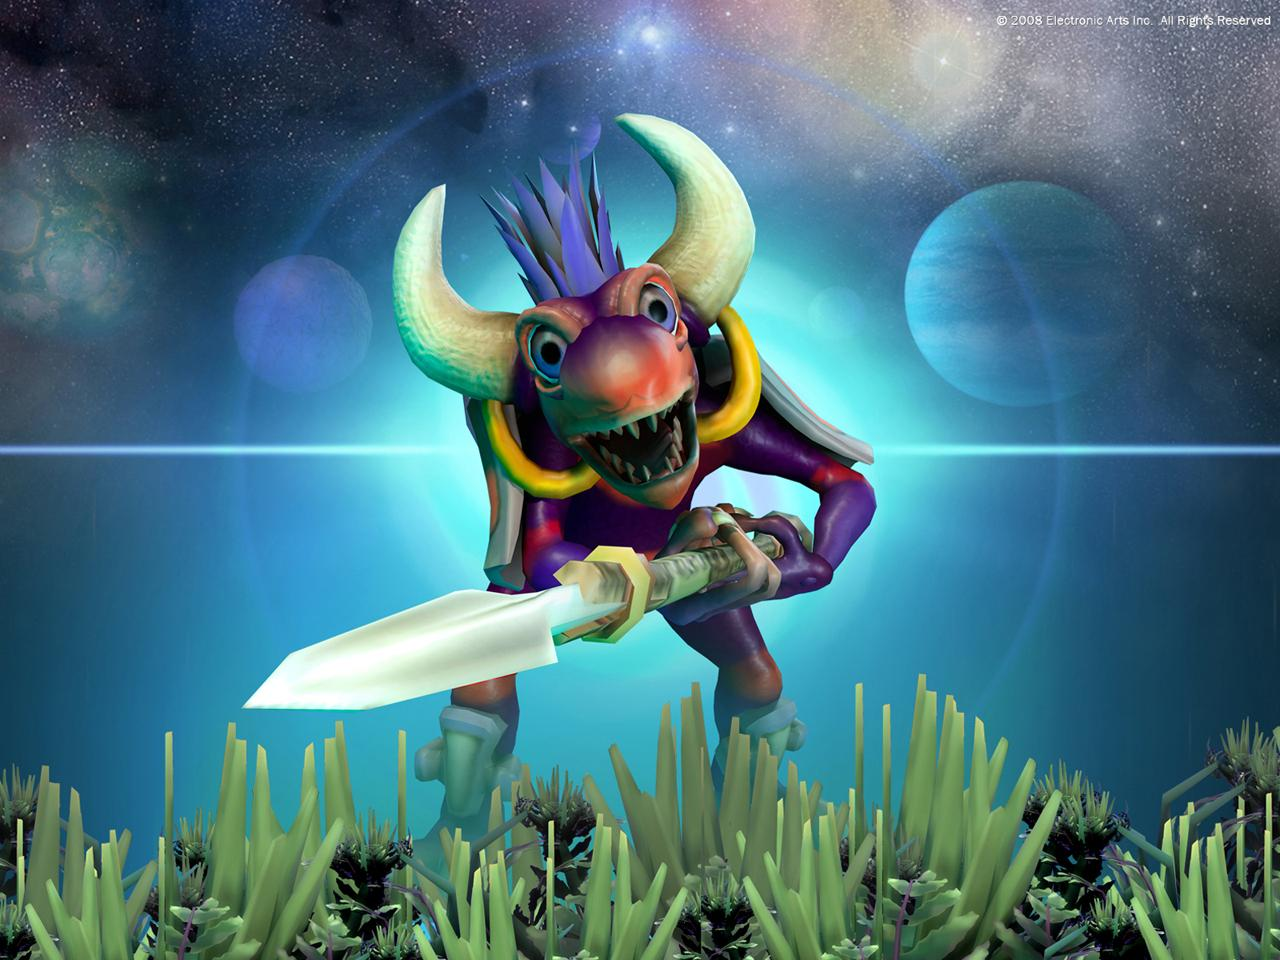 [GameGokil.com] Spore PC Games Full Version Iso Single Link